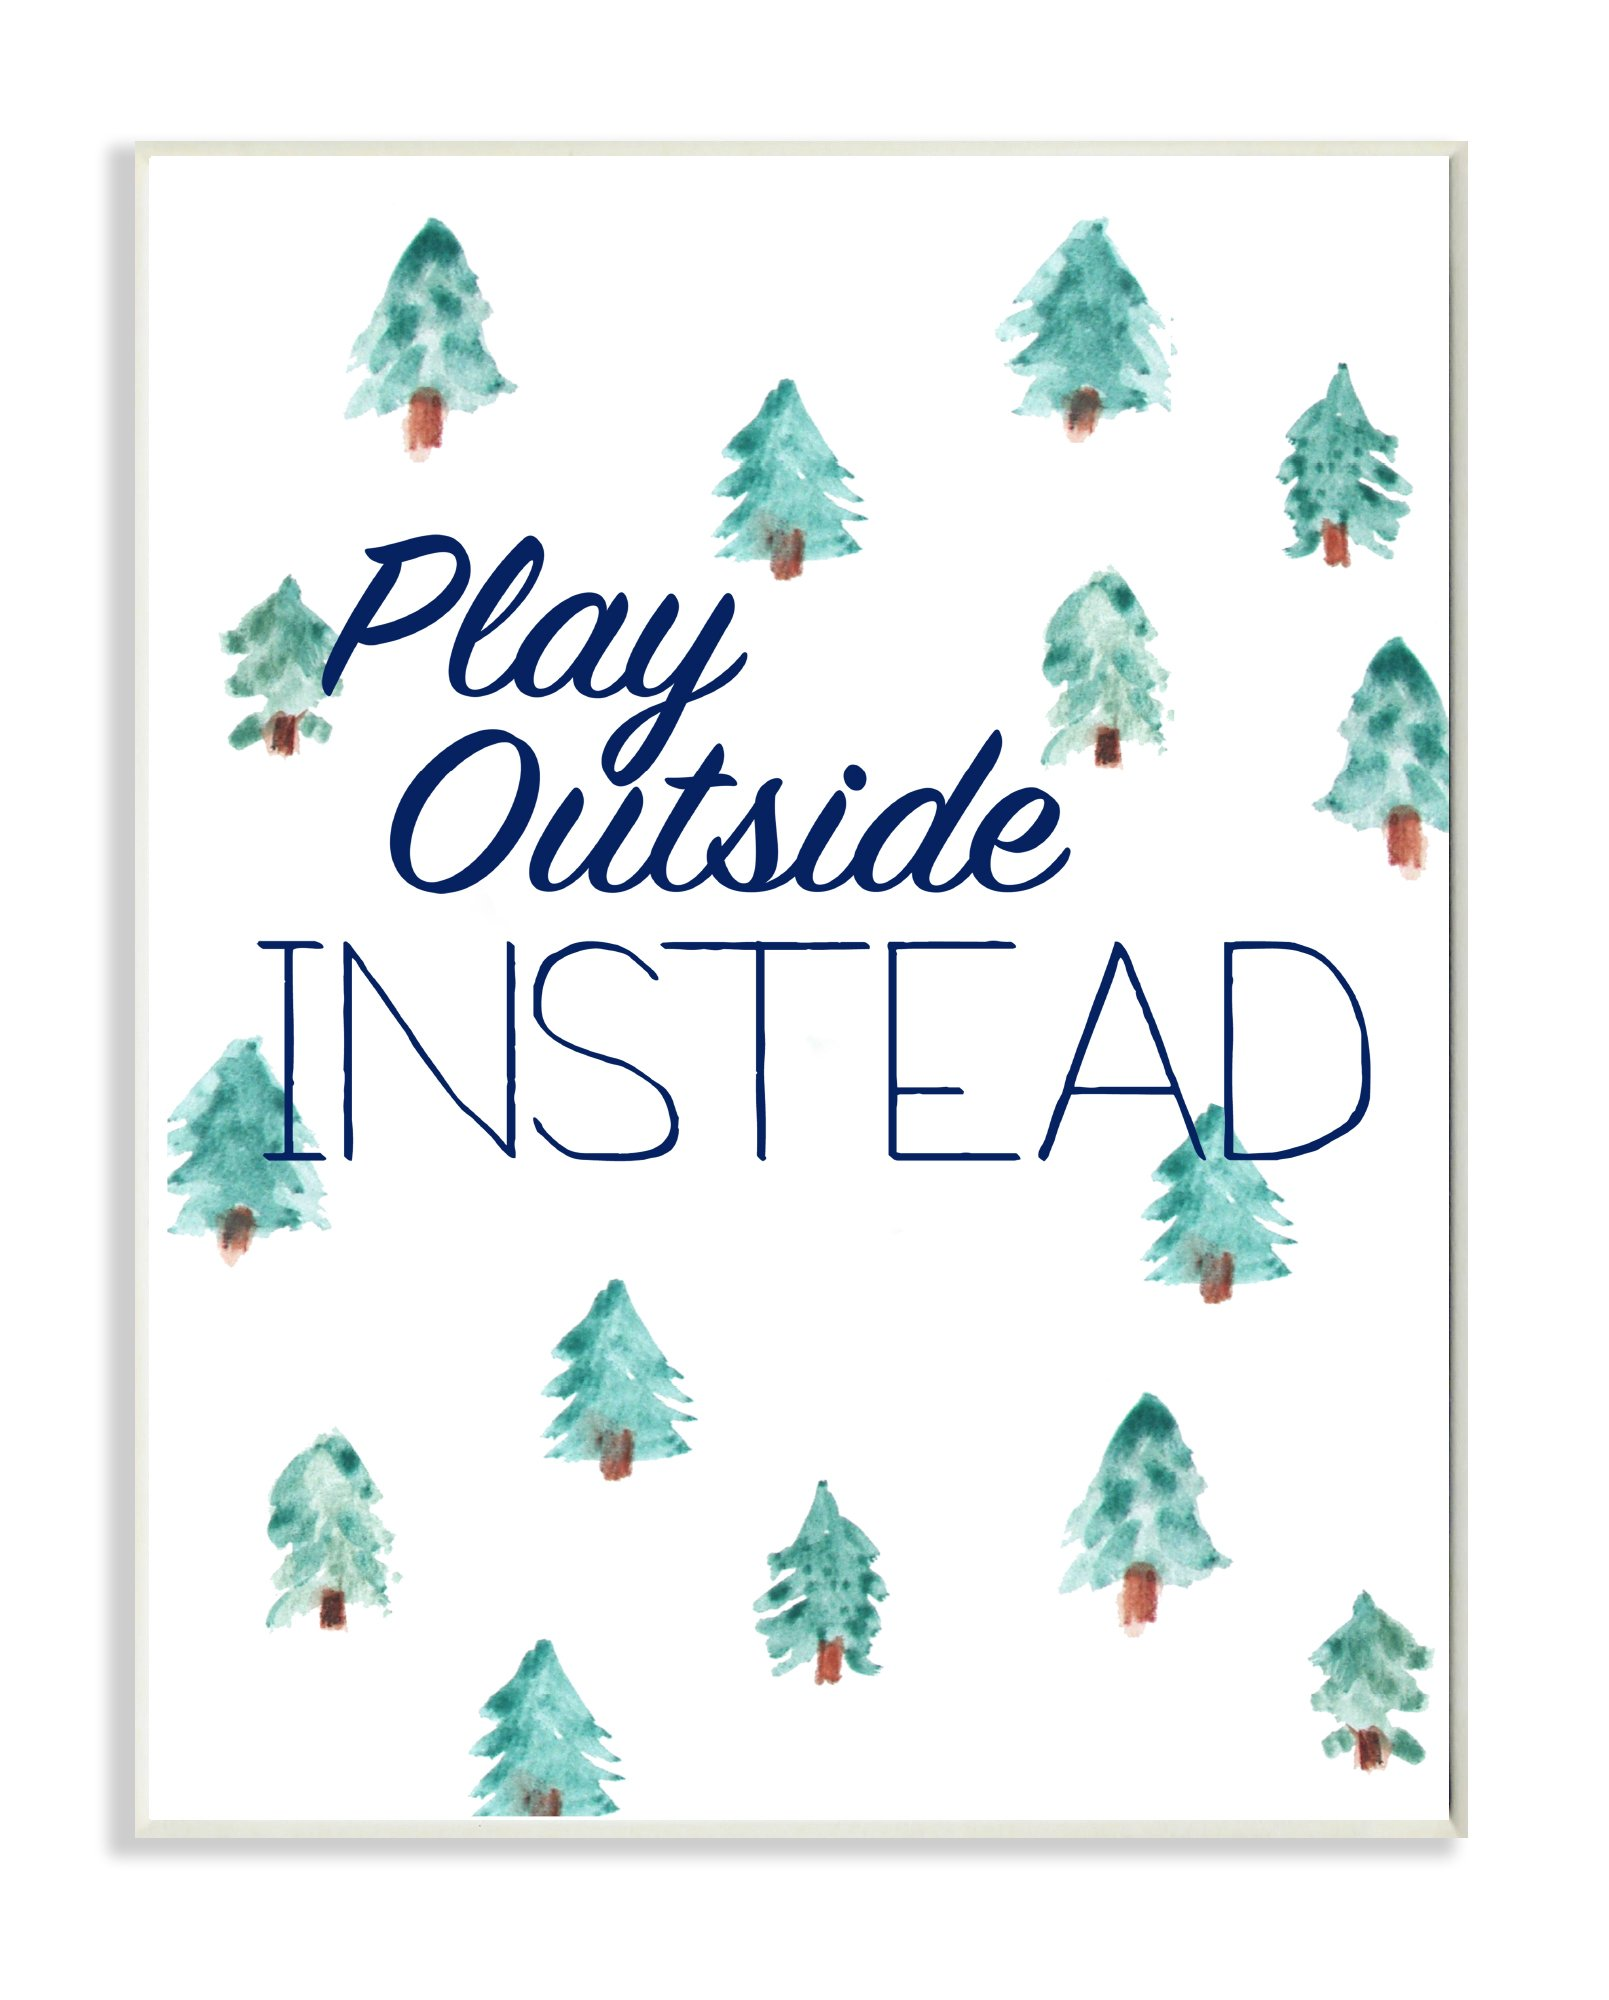 Stupell Home Décor Play Outside Instead Pine Trees Wall Plaque Art, 10 x 0.5 x 15, Proudly Made in USA